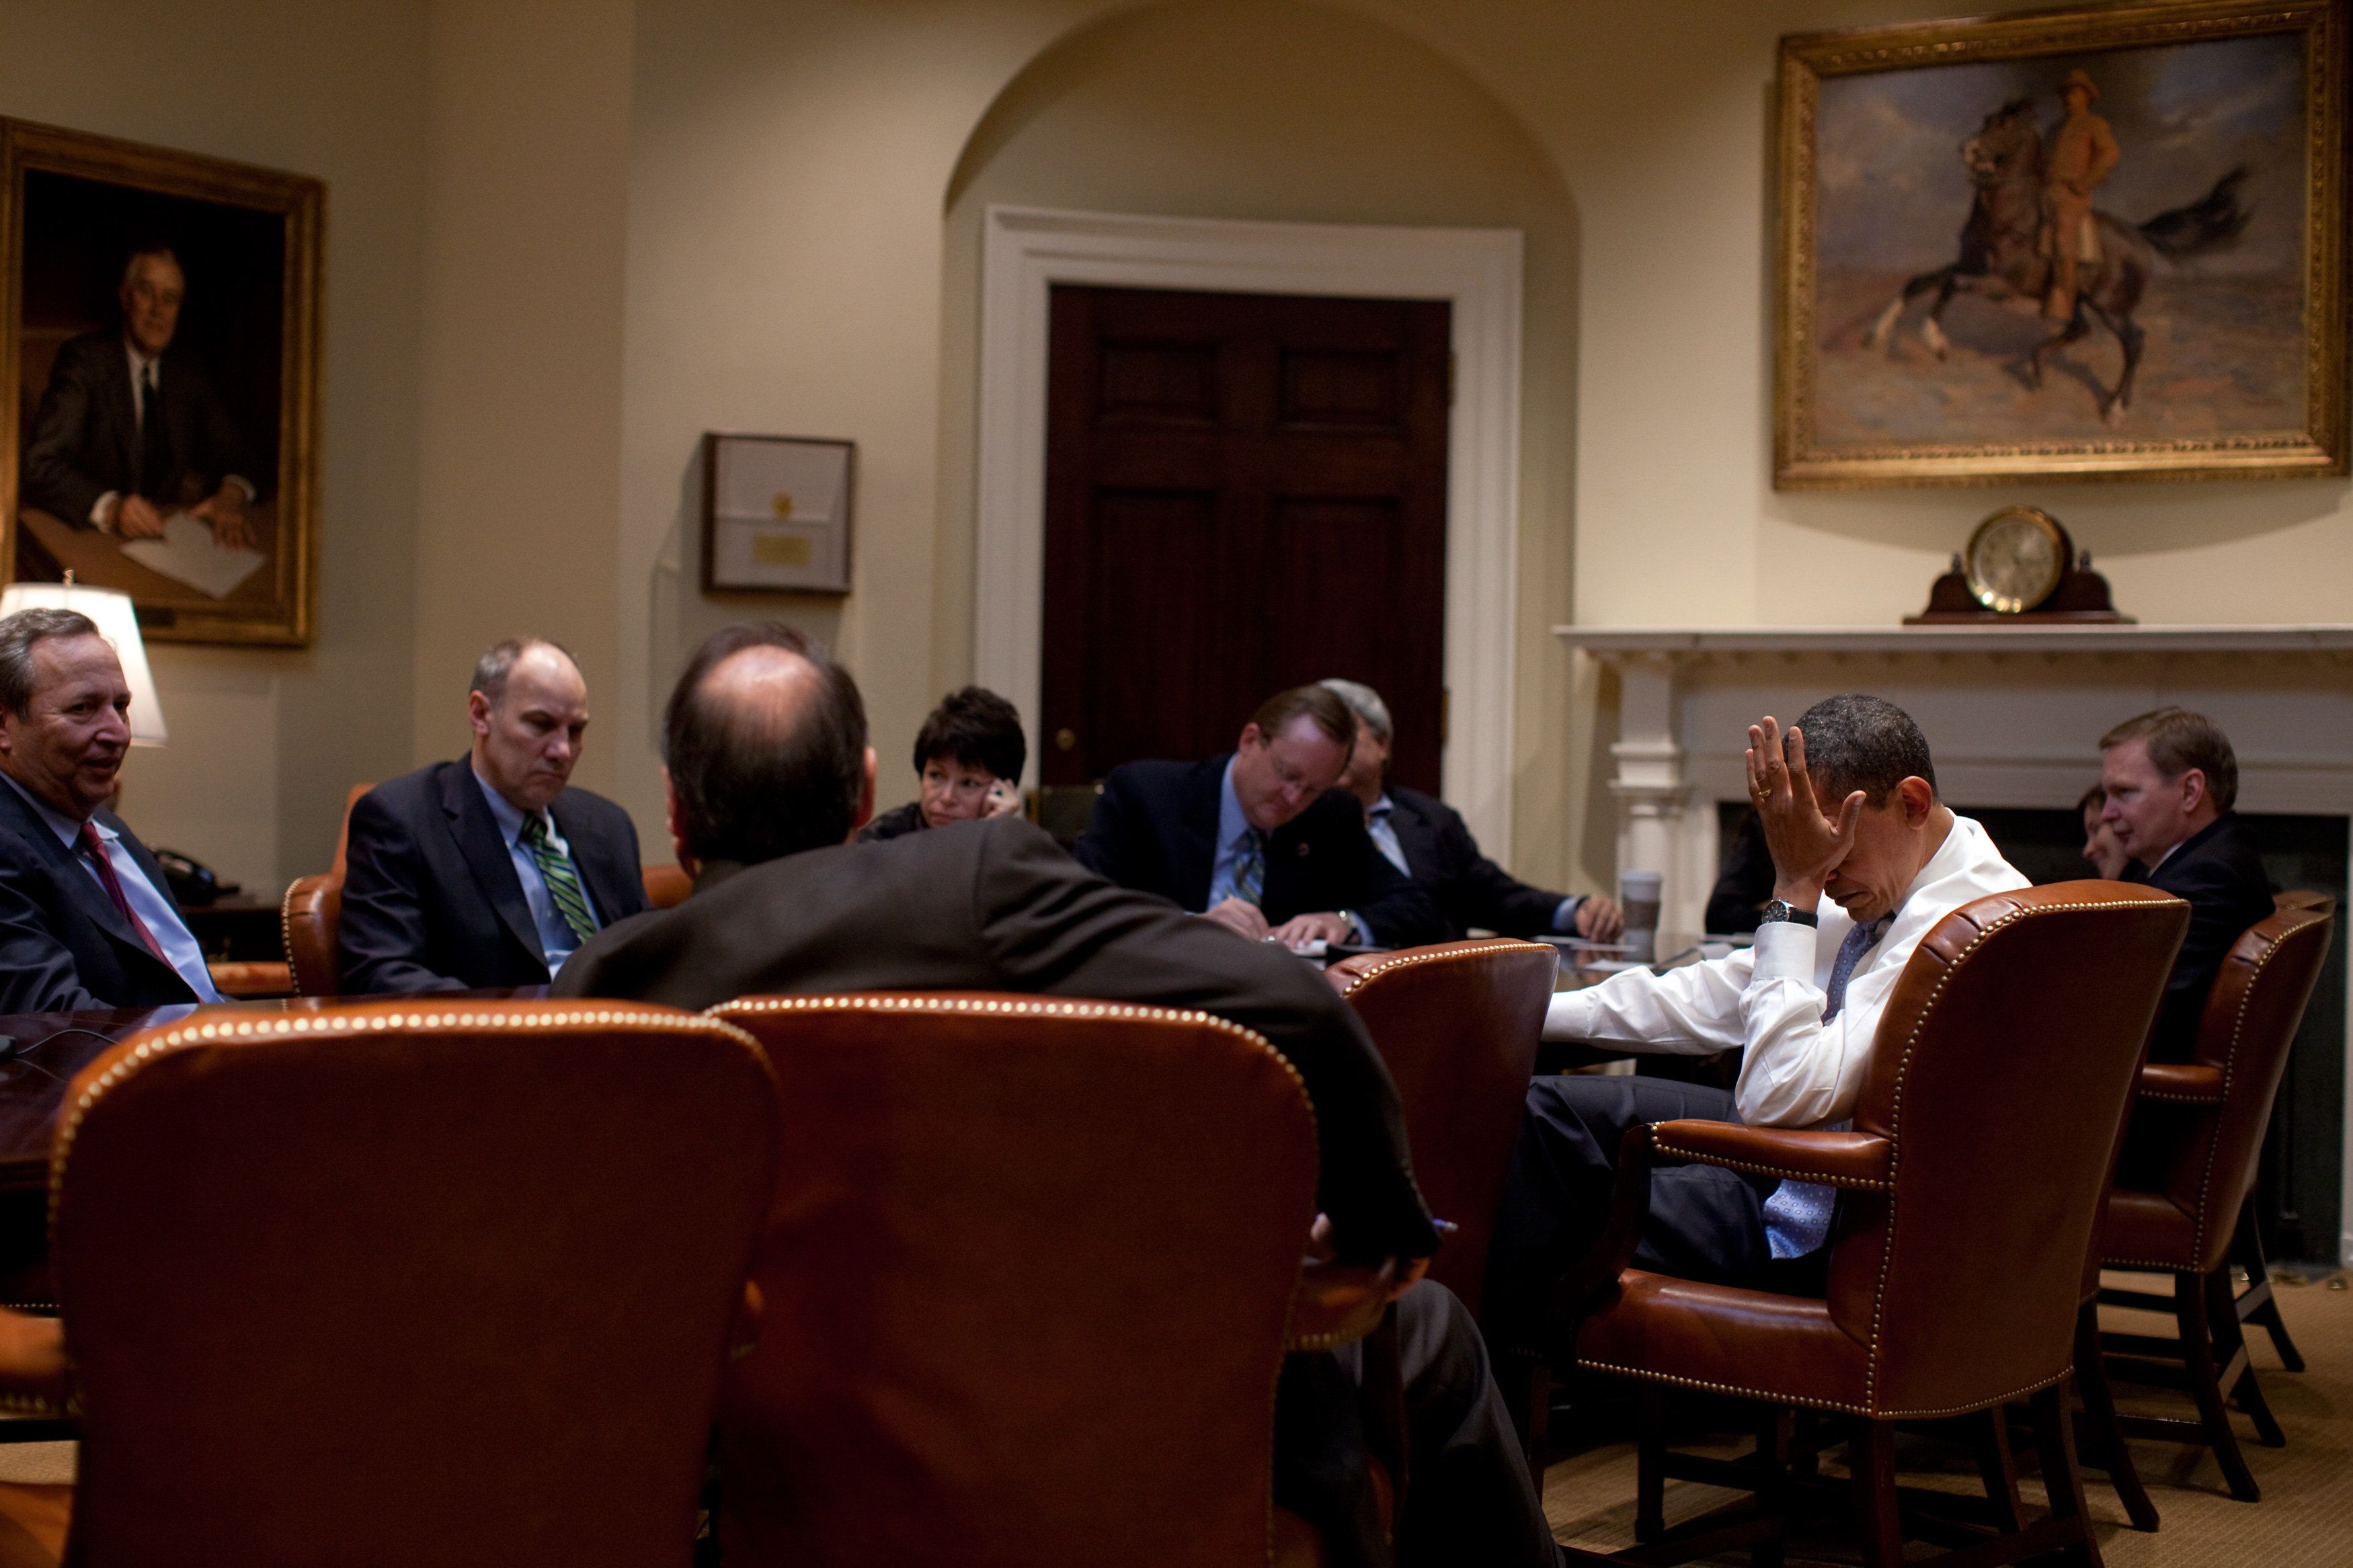 President Barack Obama meets with senior advisors in the Roosevelt Room.  2/16/09. 